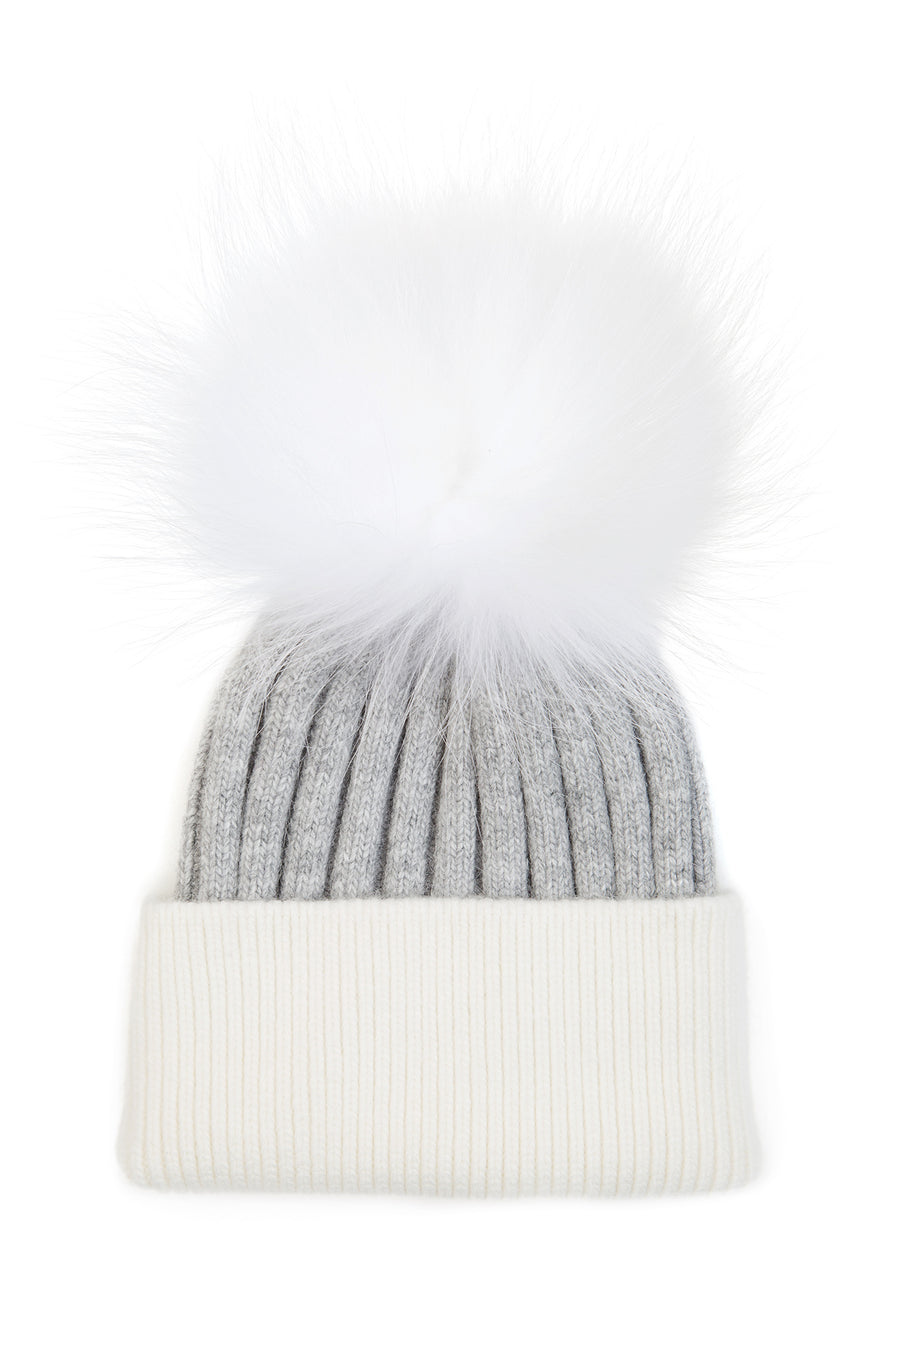 Kids Grey White Pom Pom hat